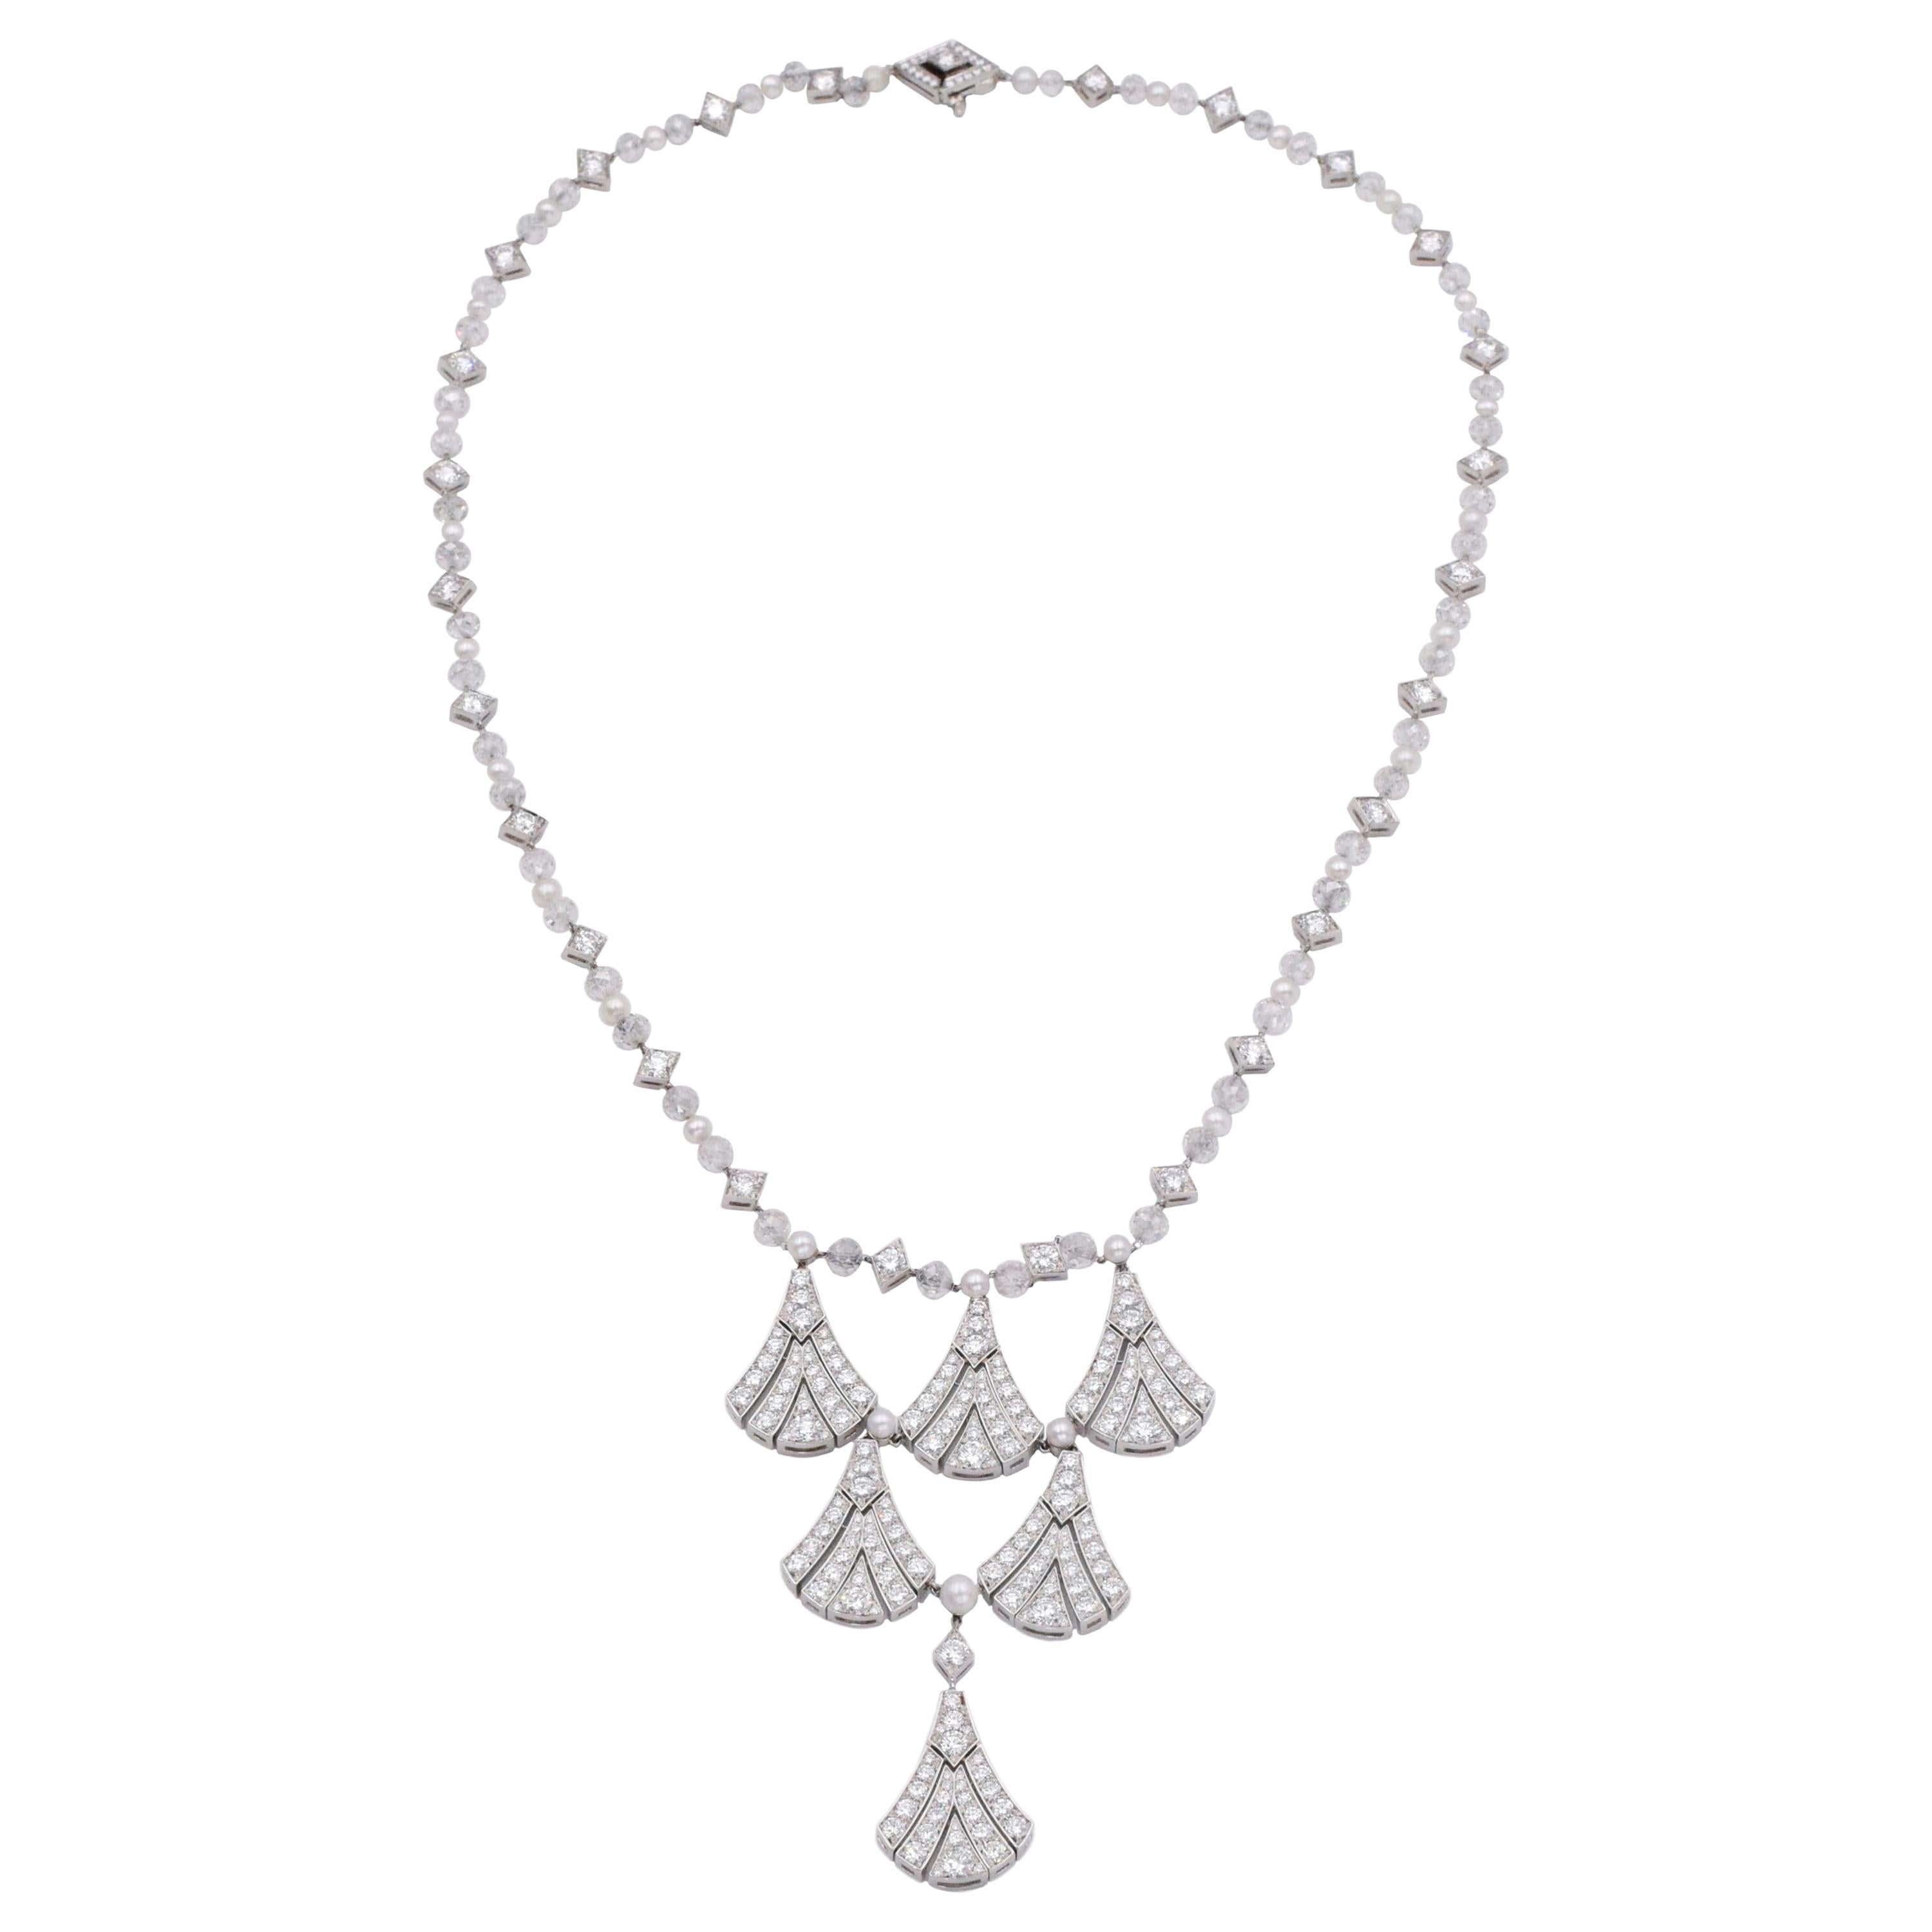 ed23ce7e174b5 Tiffany & Co. Drop Necklaces - 41 For Sale at 1stdibs